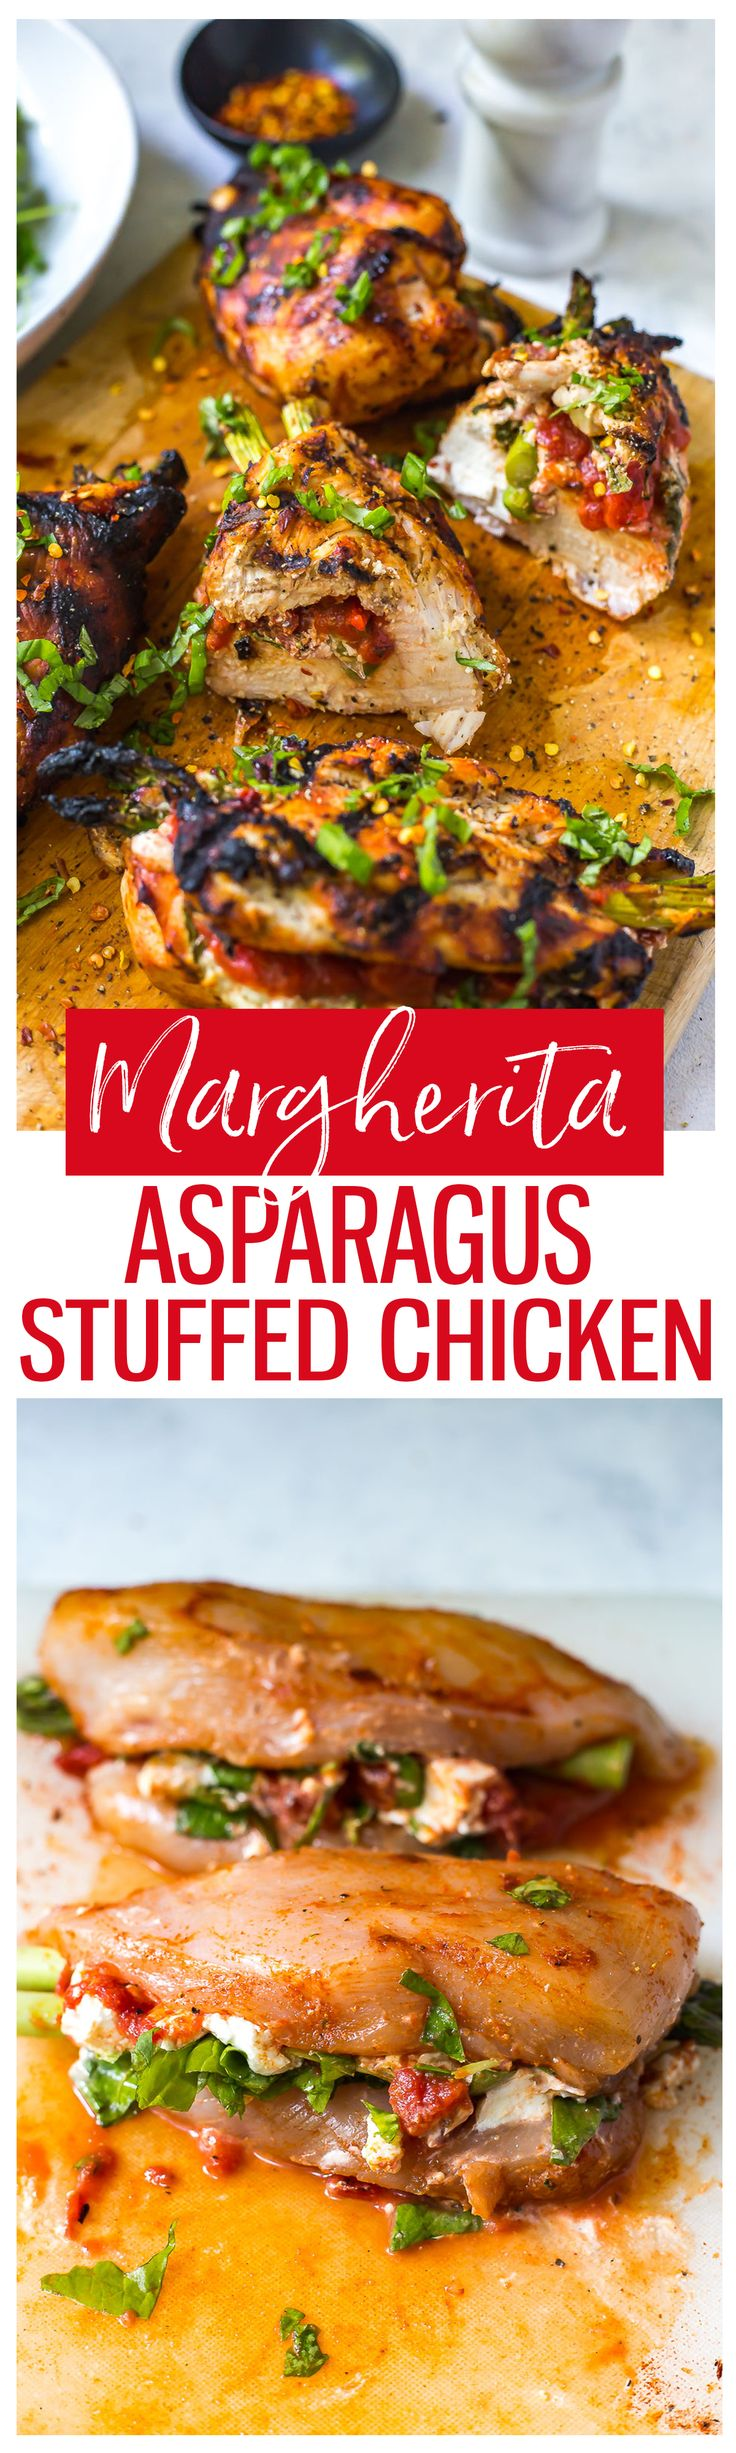 This Margherita Asparagus Stuffed Chicken with goat cheese, tomatoes and spinach is a delicious and easy 30-minute, low-carb dinner idea cooked on the BBQ!